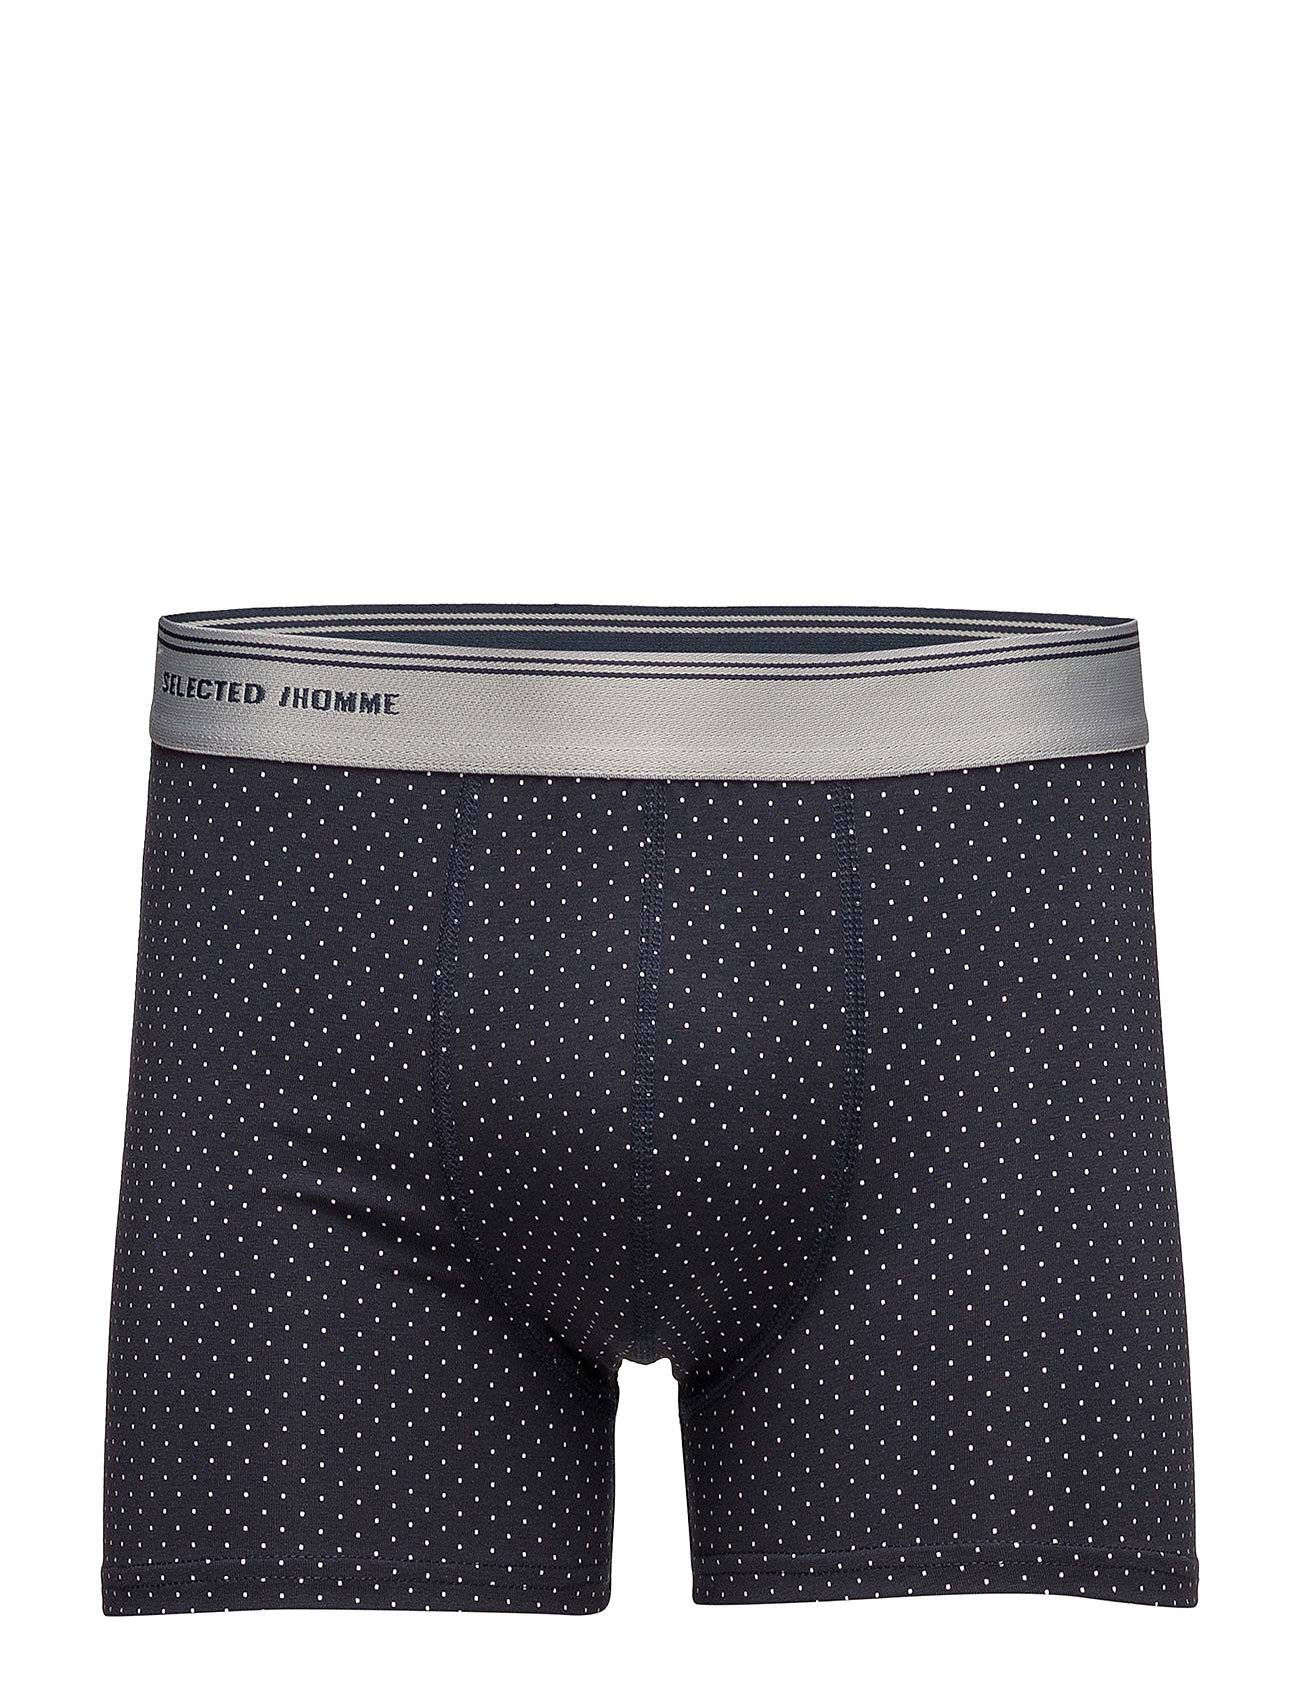 Selected Homme Shddot Trunk